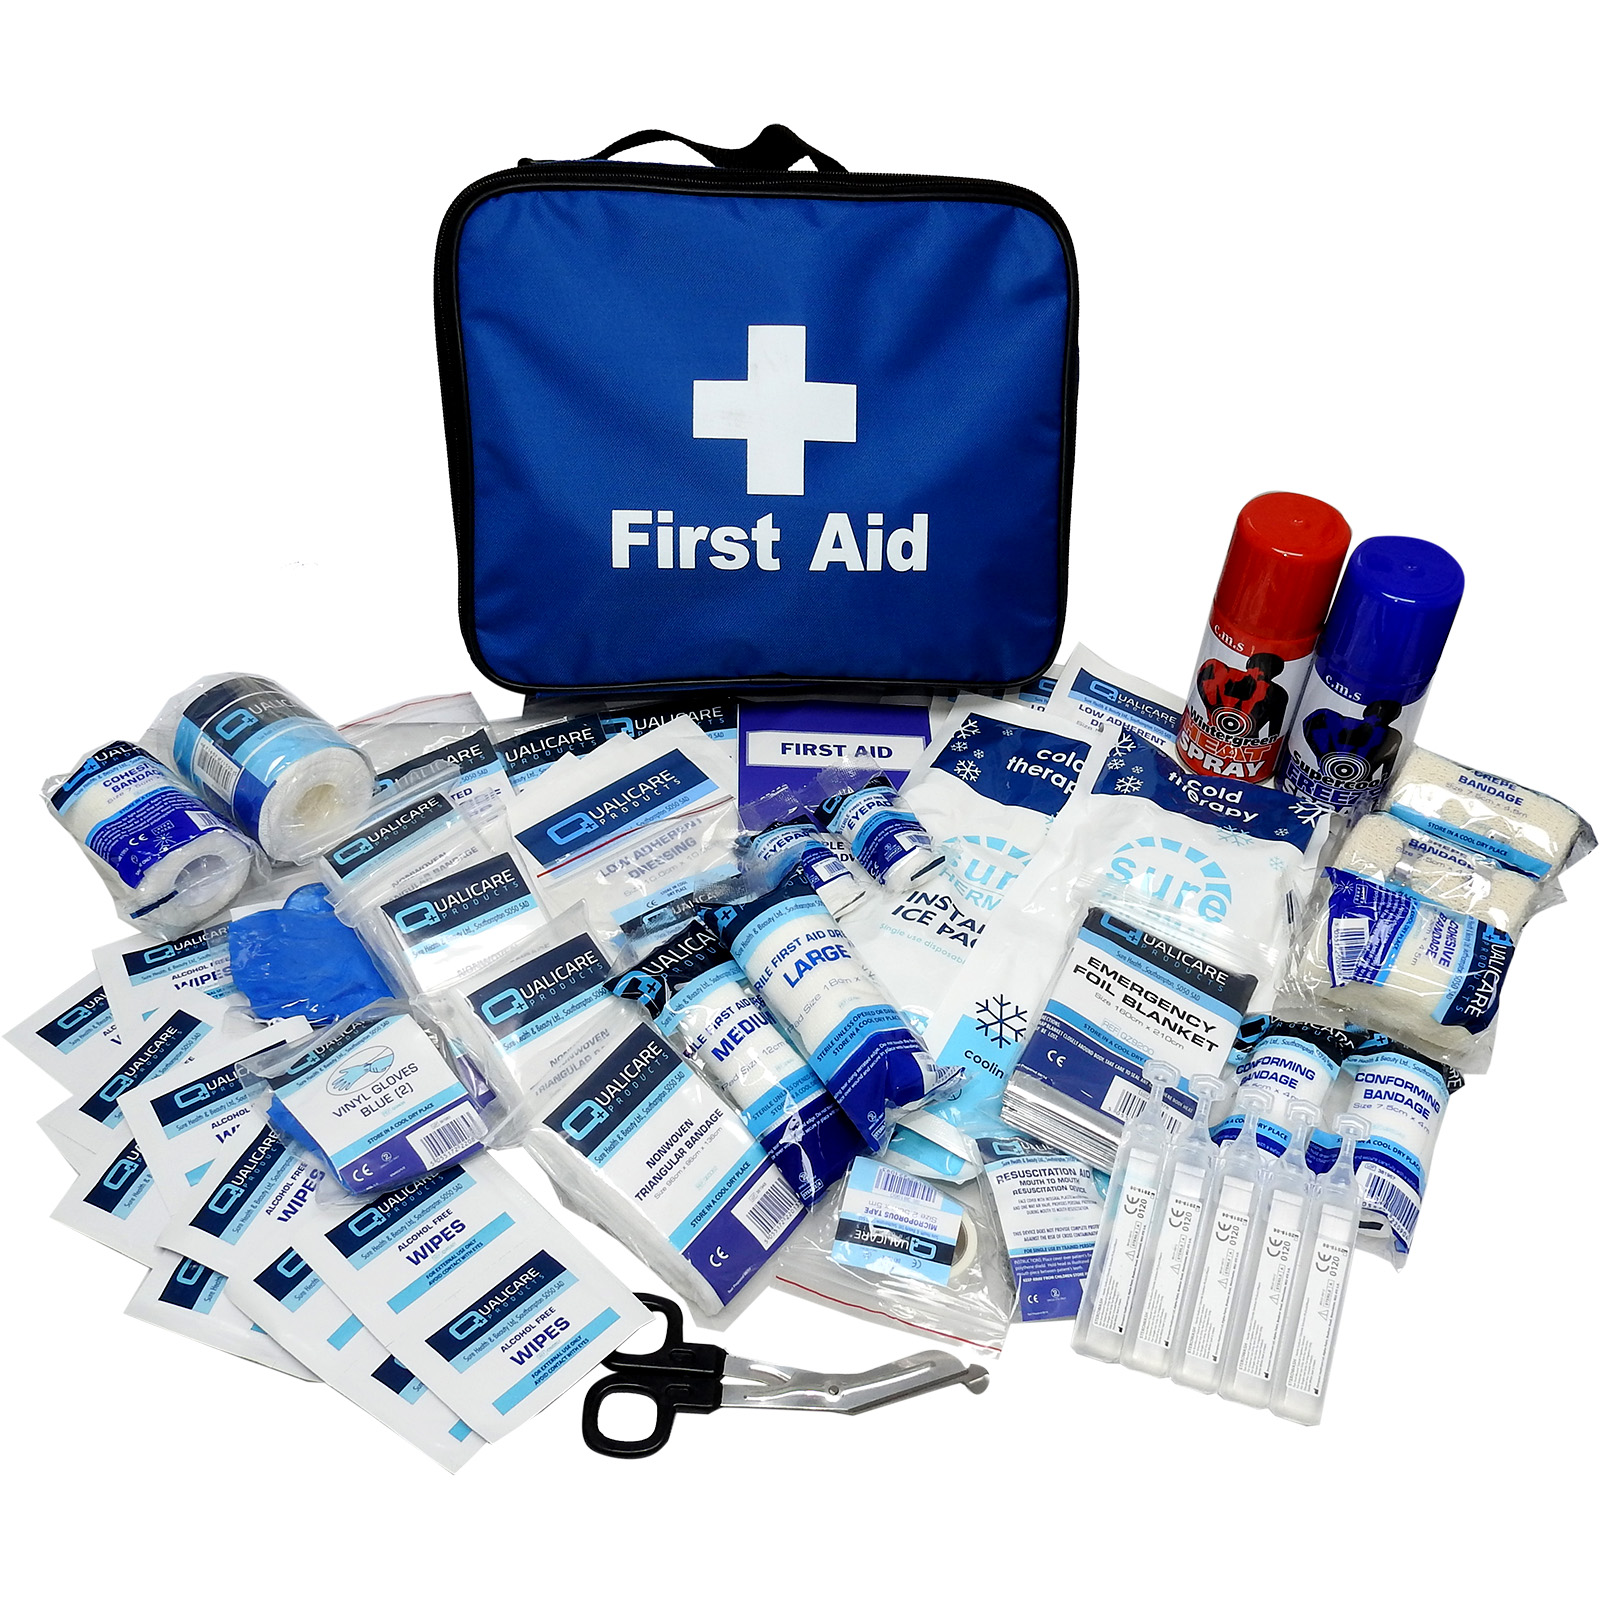 Qualicare sports gym touchline elite training childrens first aid sentinel qualicare sports gym touchline elite training childrens first aid supplies kit publicscrutiny Choice Image